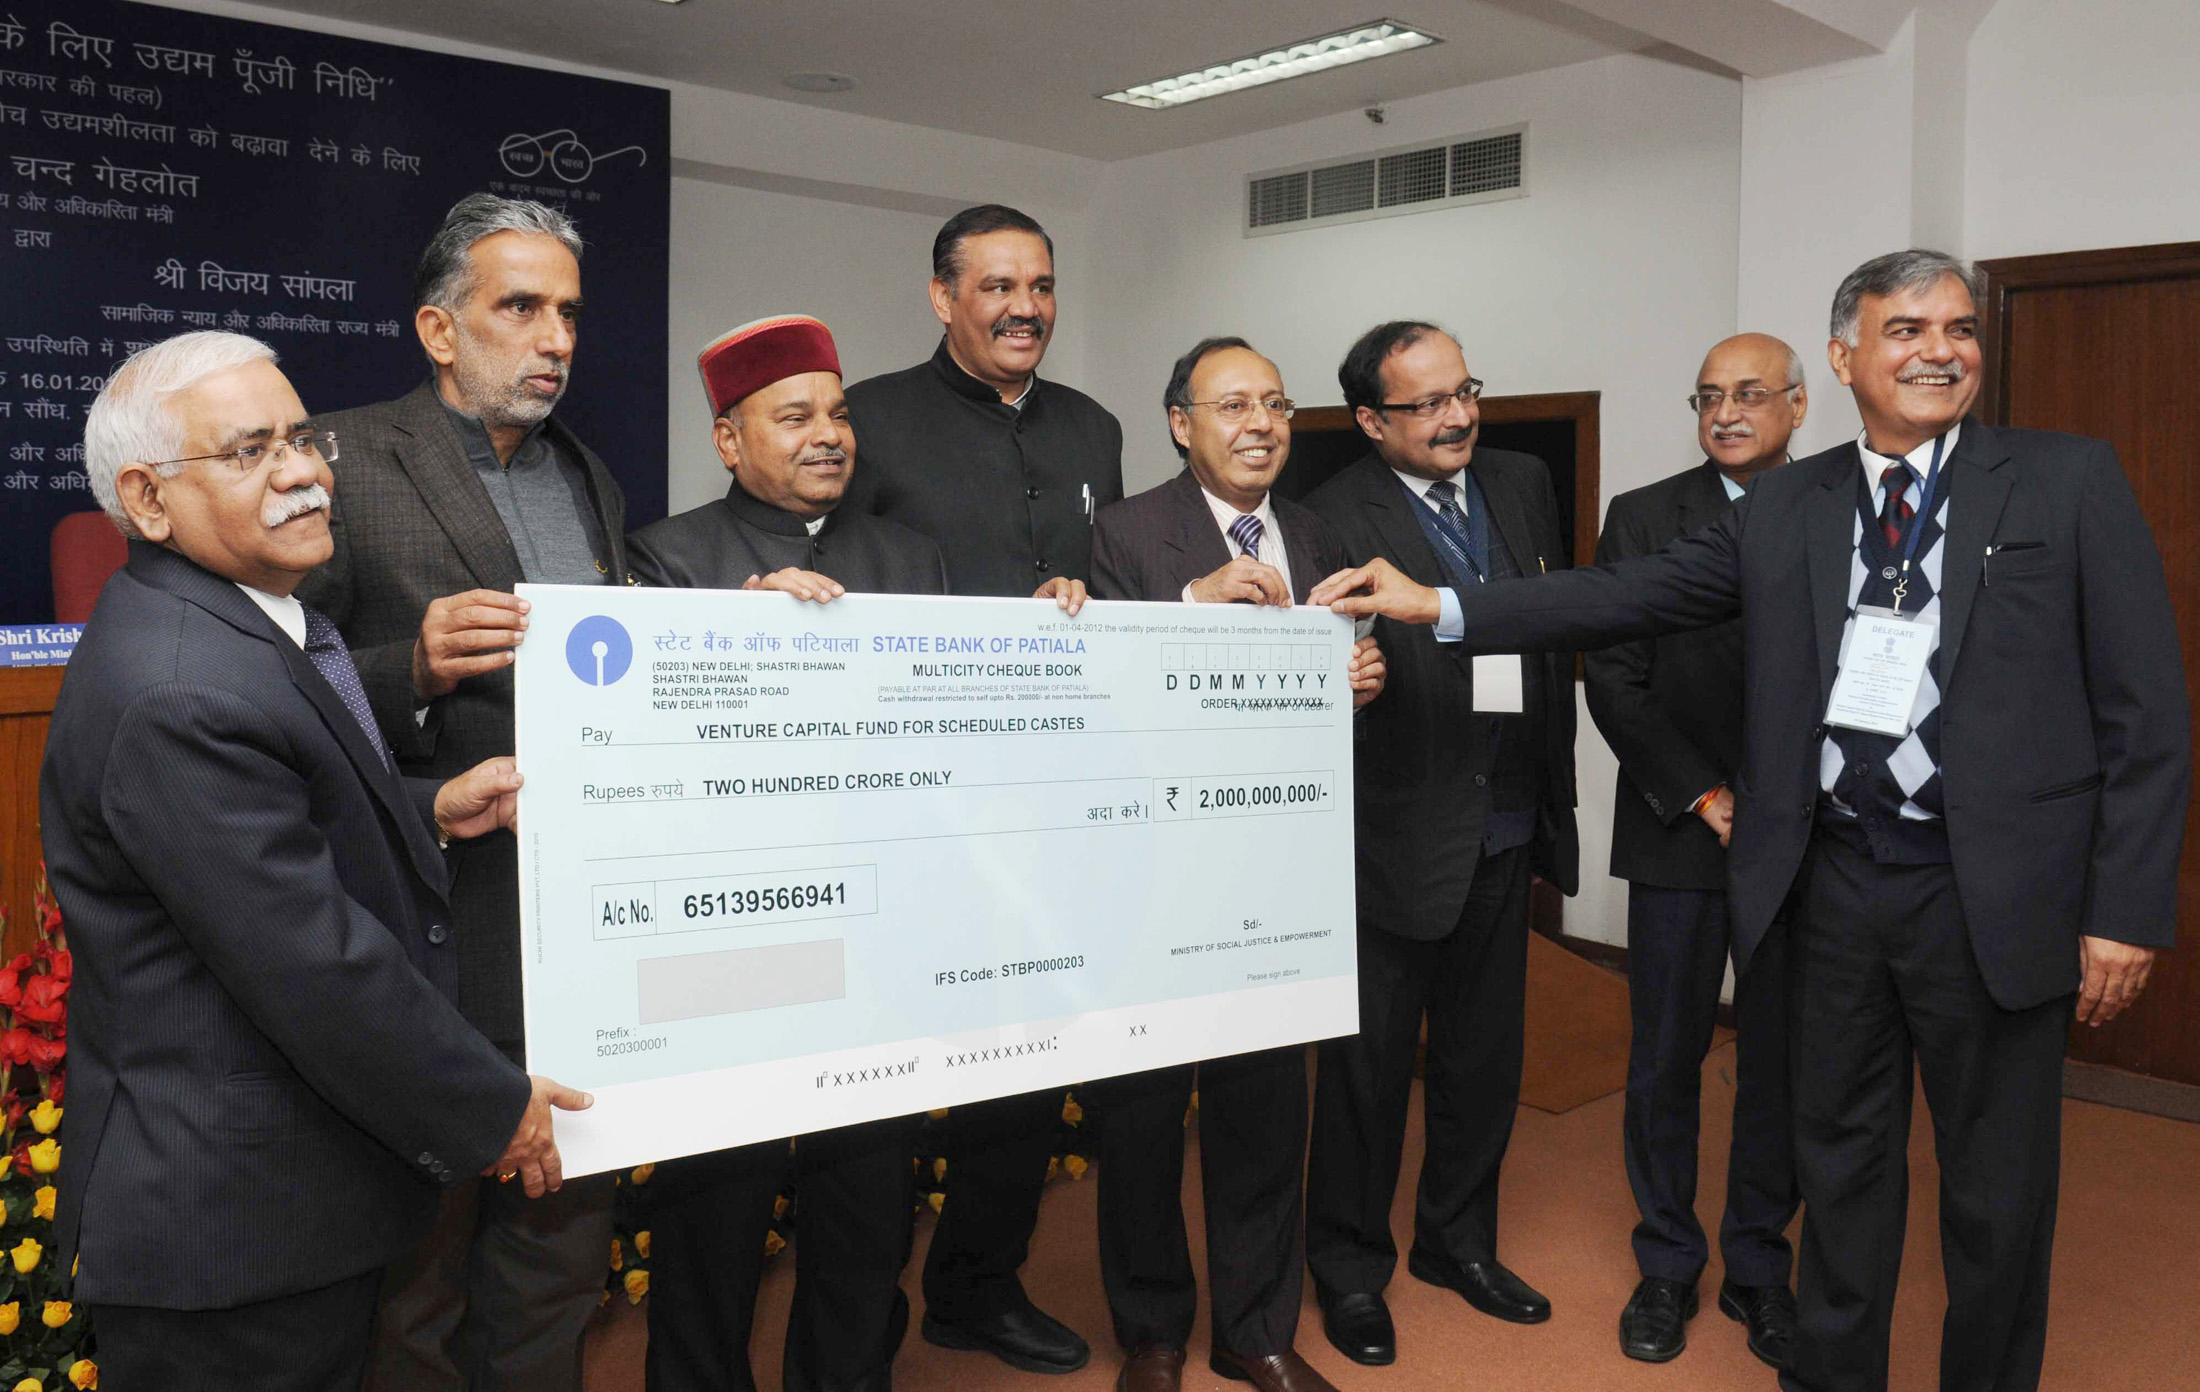 Chand Gehlot presenting the cheque to the IFCI at the launch of the Venture Capital Fund for Scheduled Castes, in New Delhi. The Minister of State for